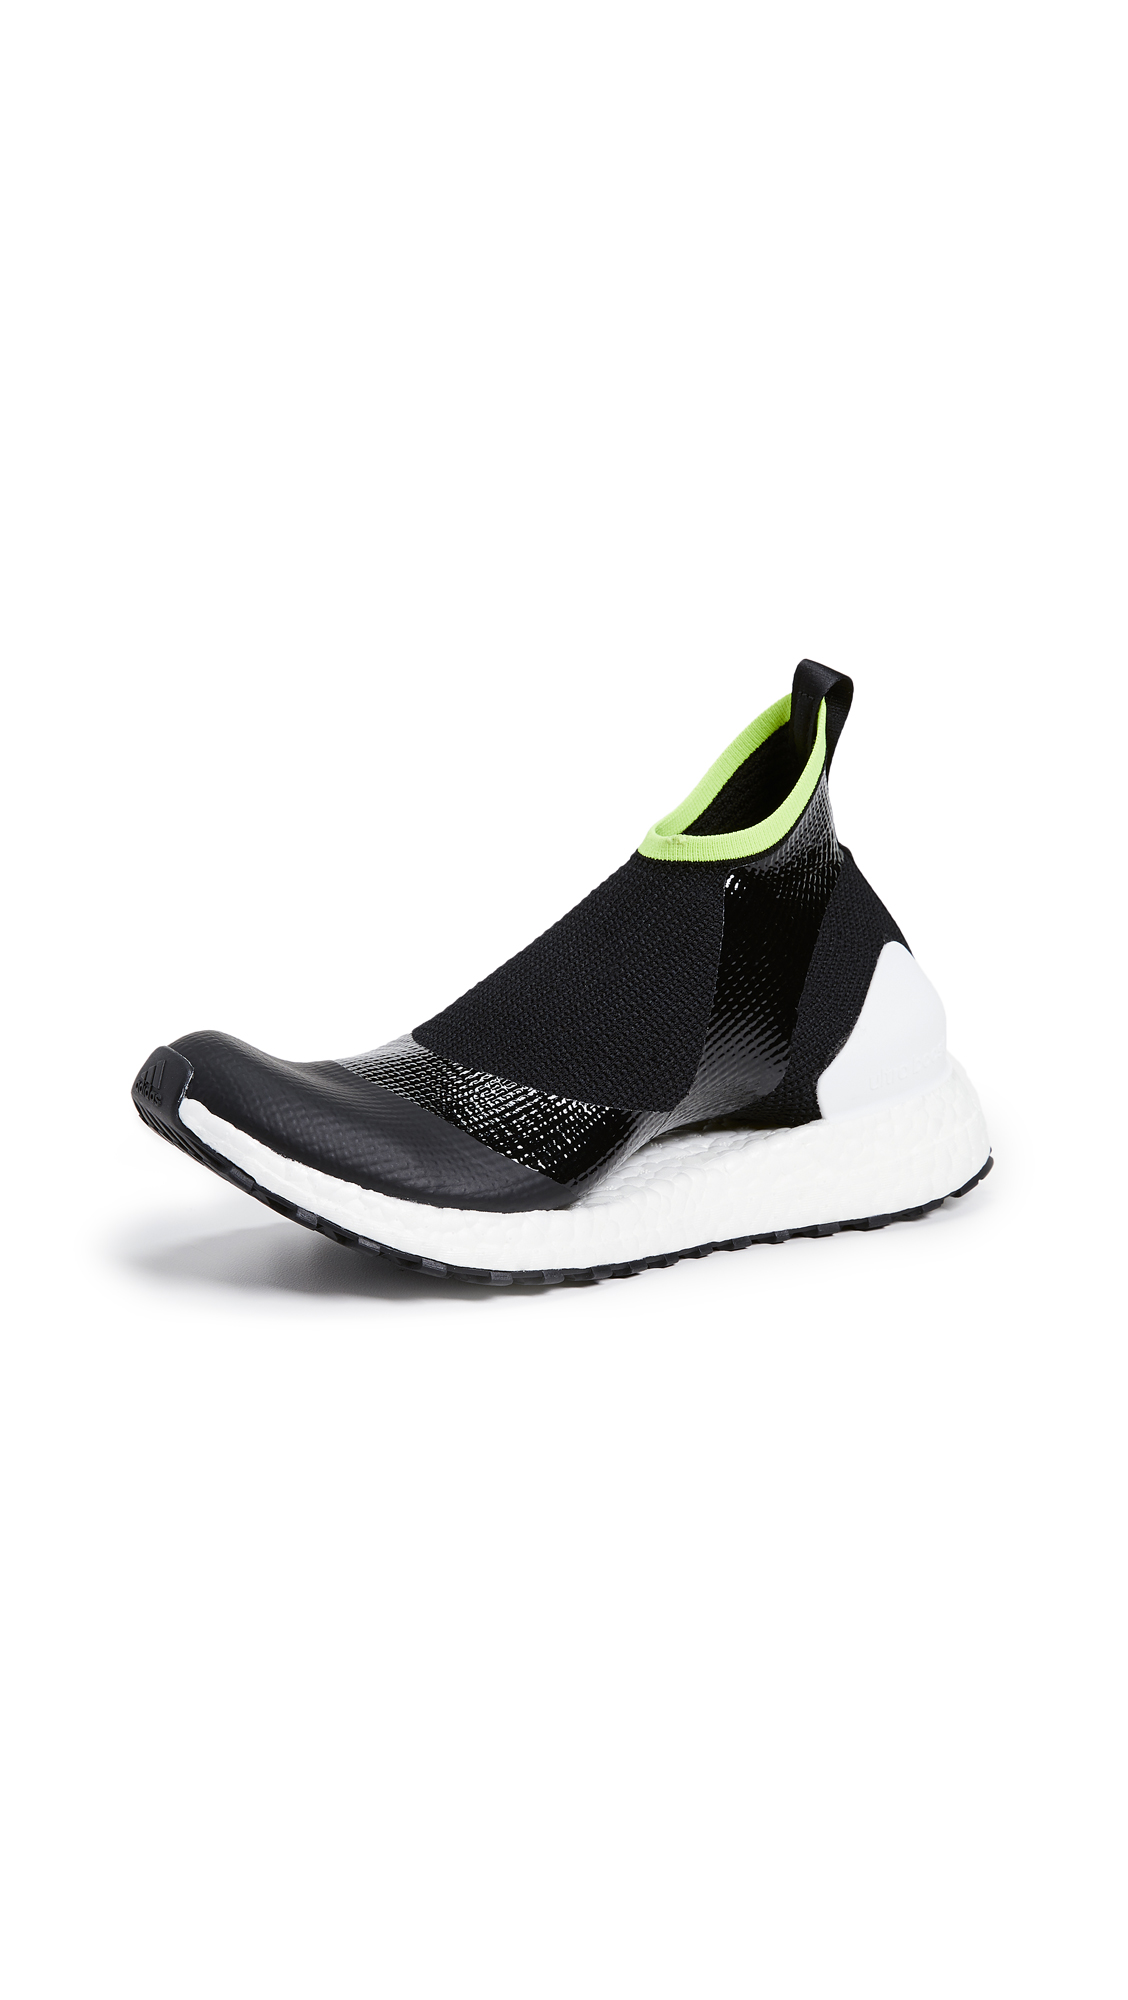 adidas by Stella McCartney UltraBOOST X ATR Sneakers - Black/White/Solar